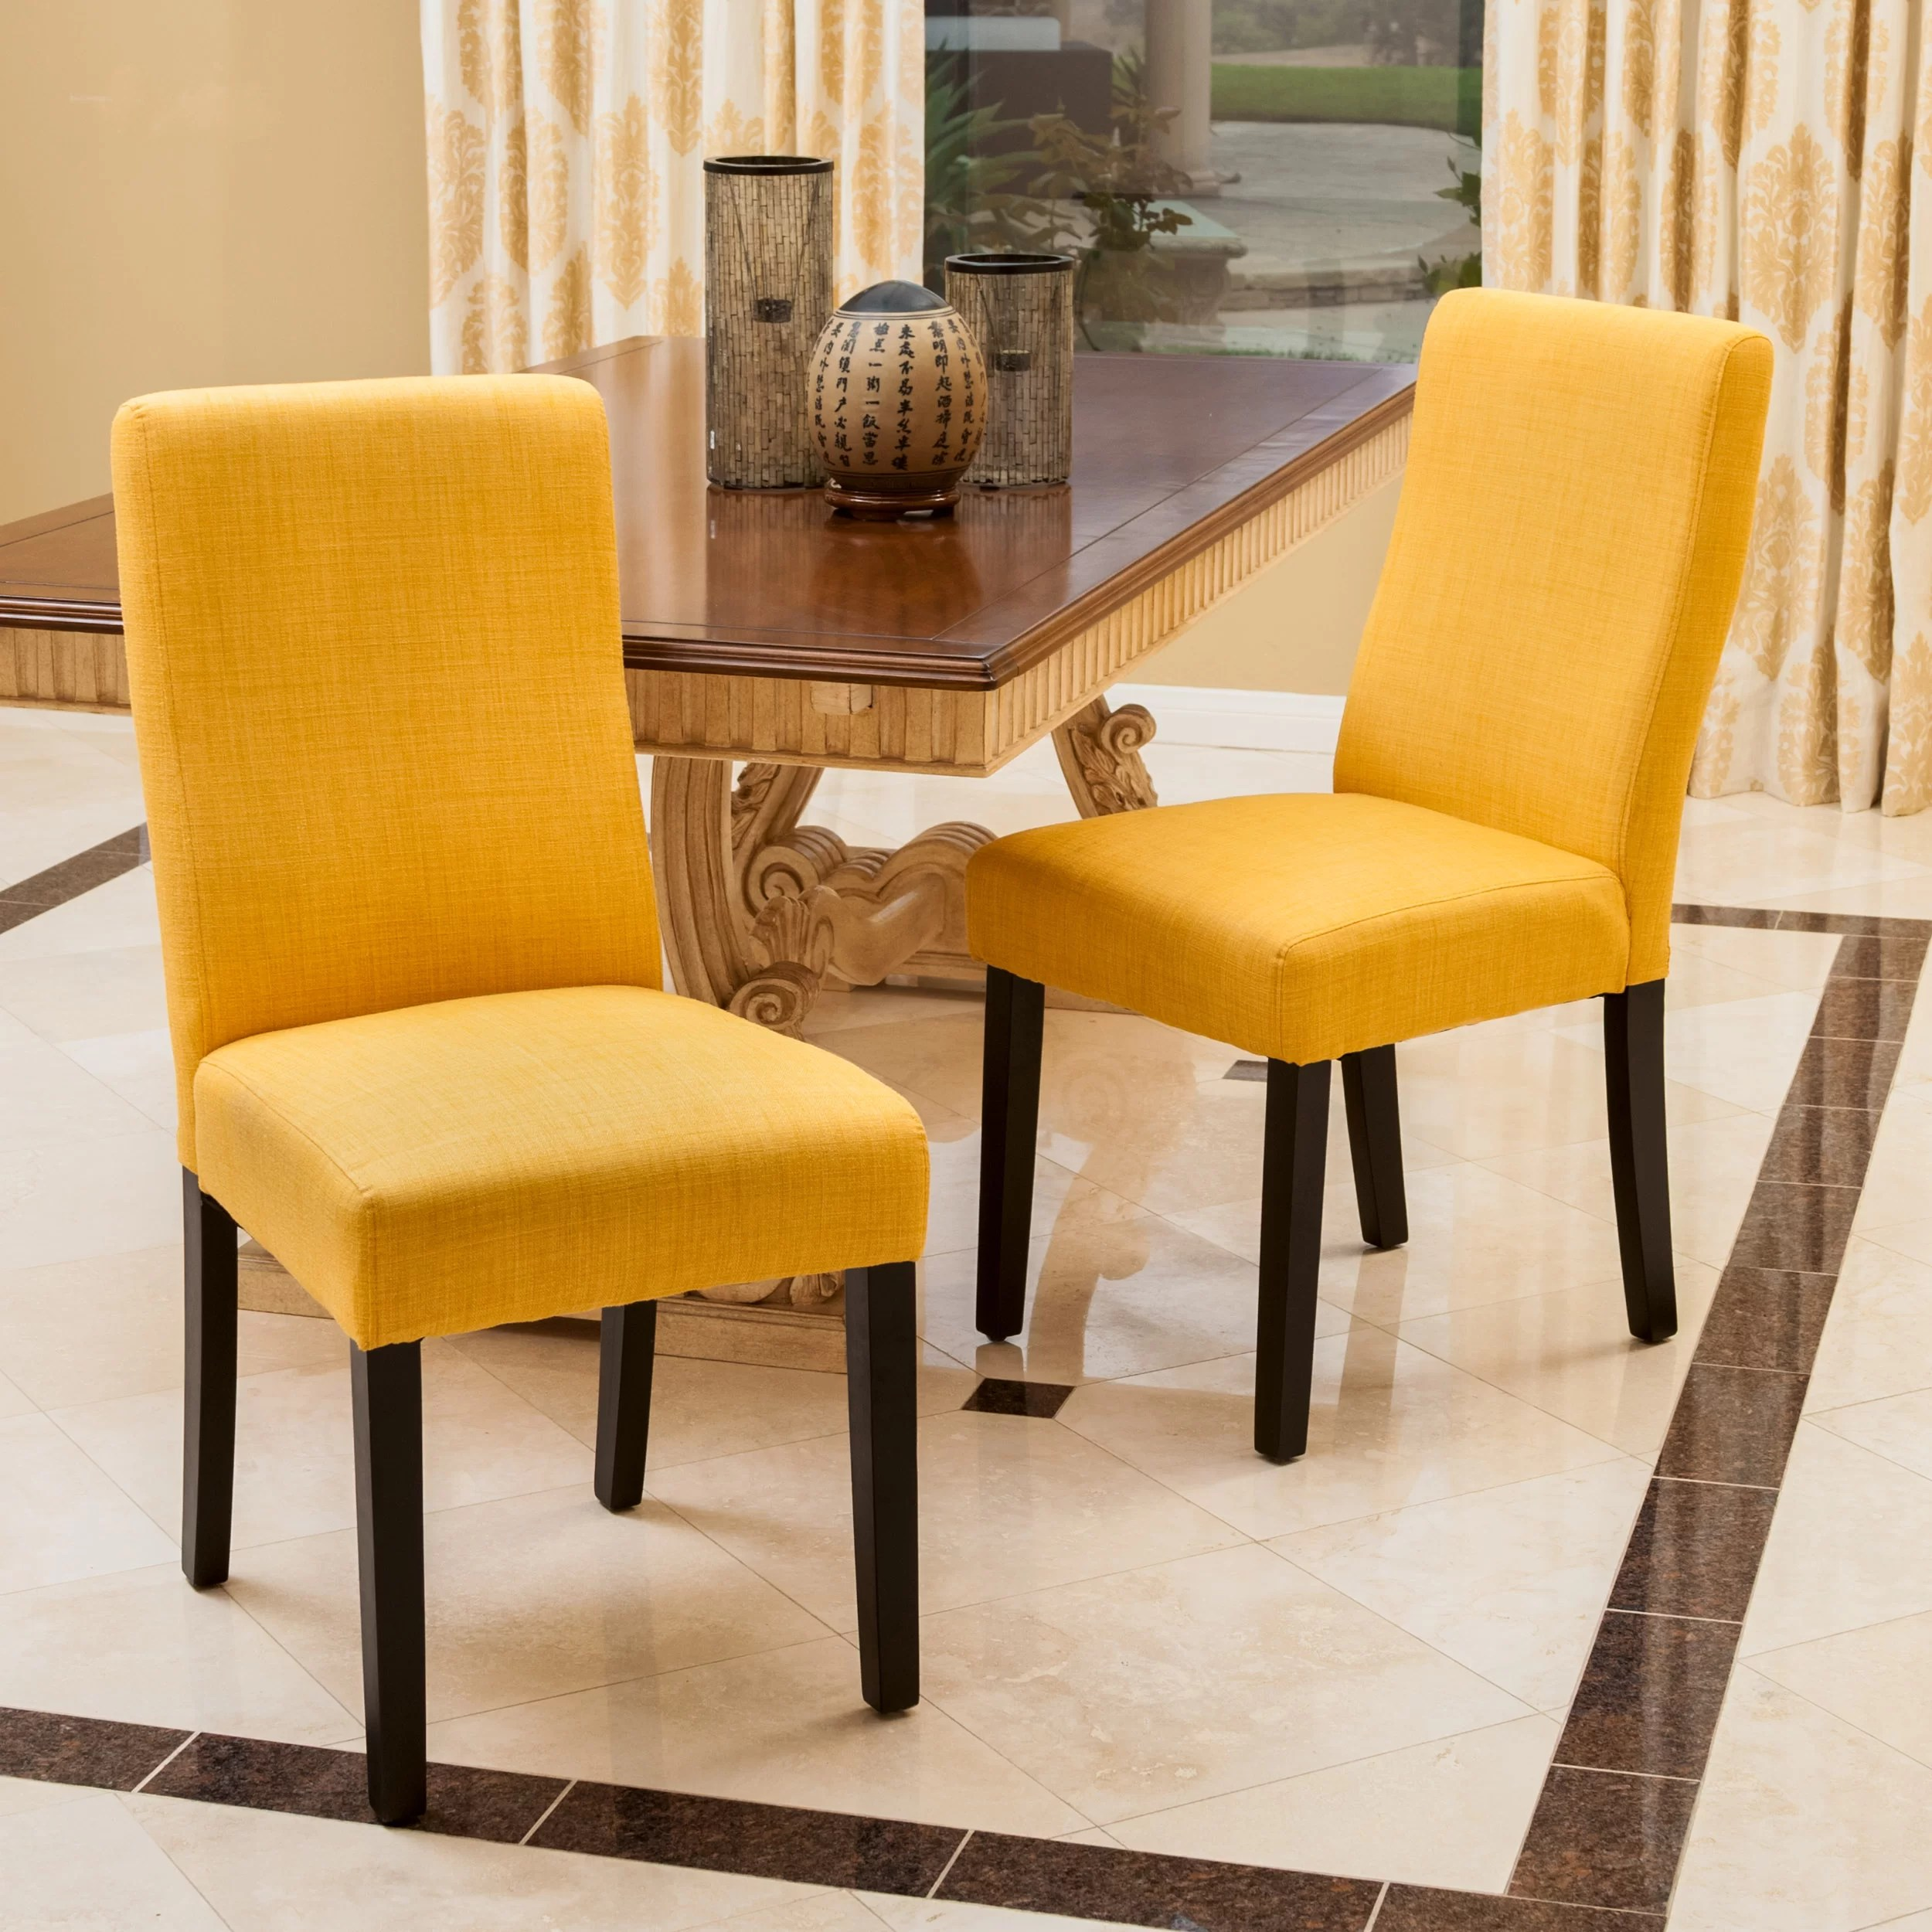 liberty dining chairs balancing ball chair home loft concepts parsons and reviews